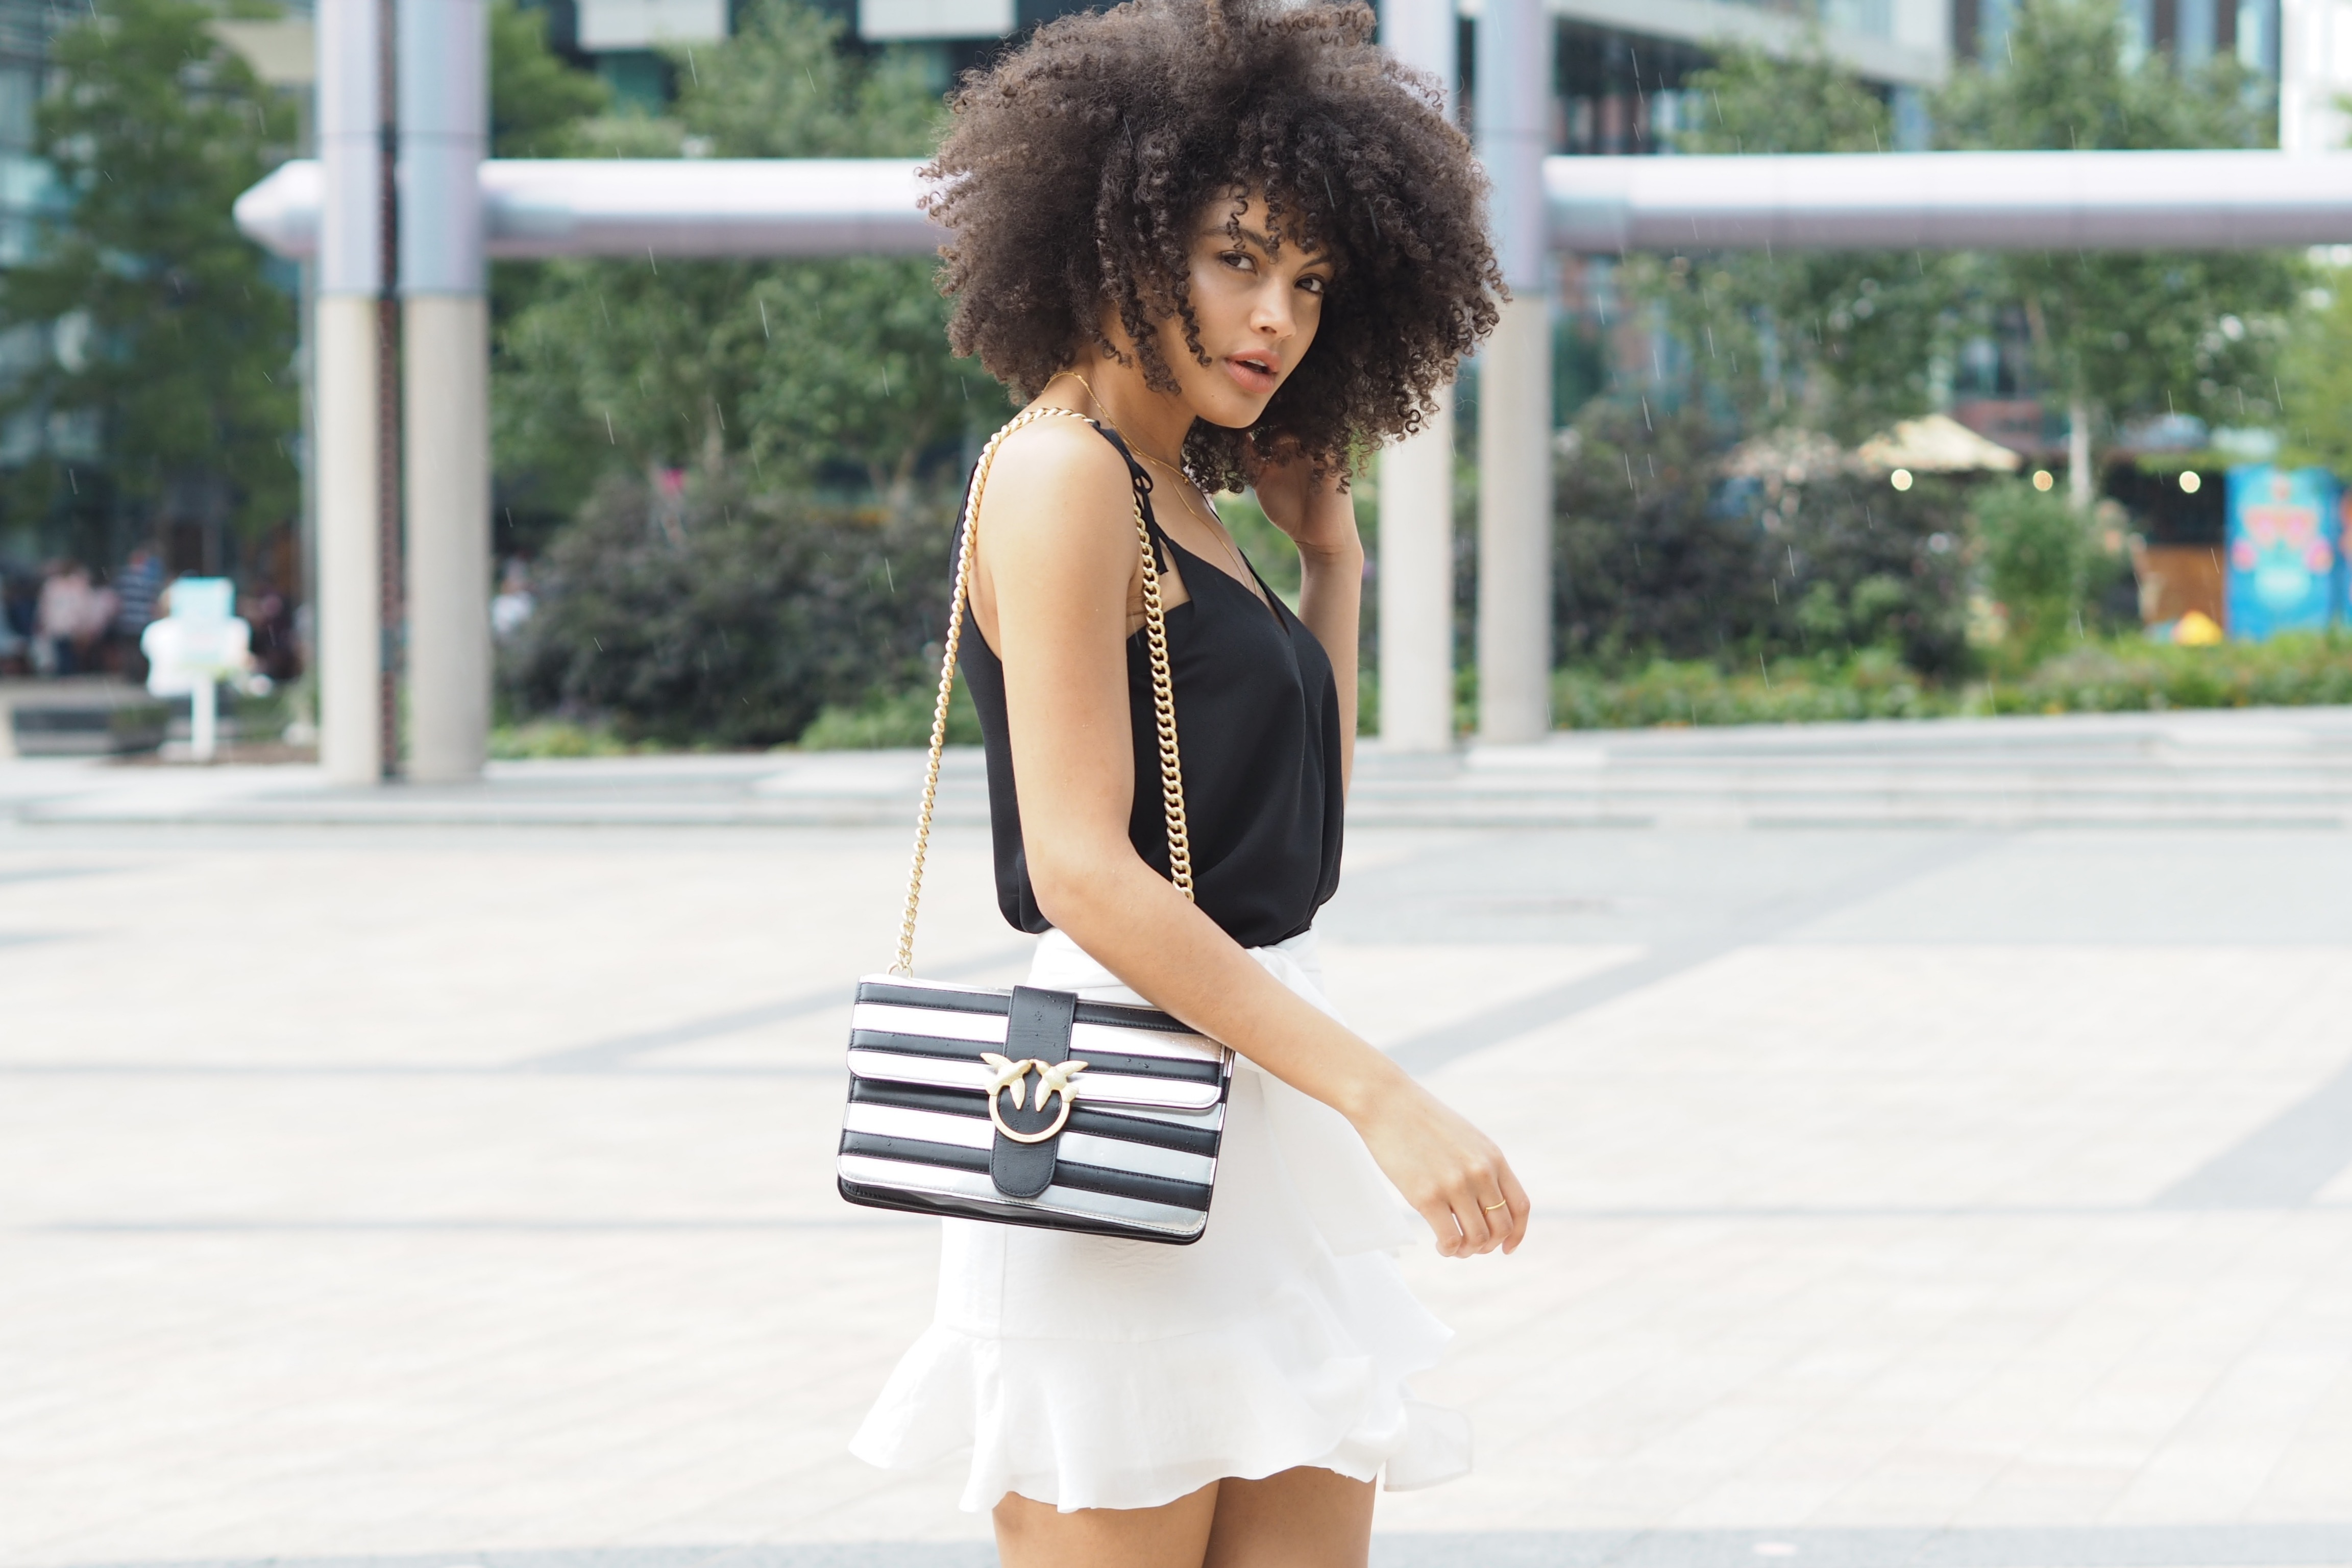 Pinko black and silver love bag monochrome outfit